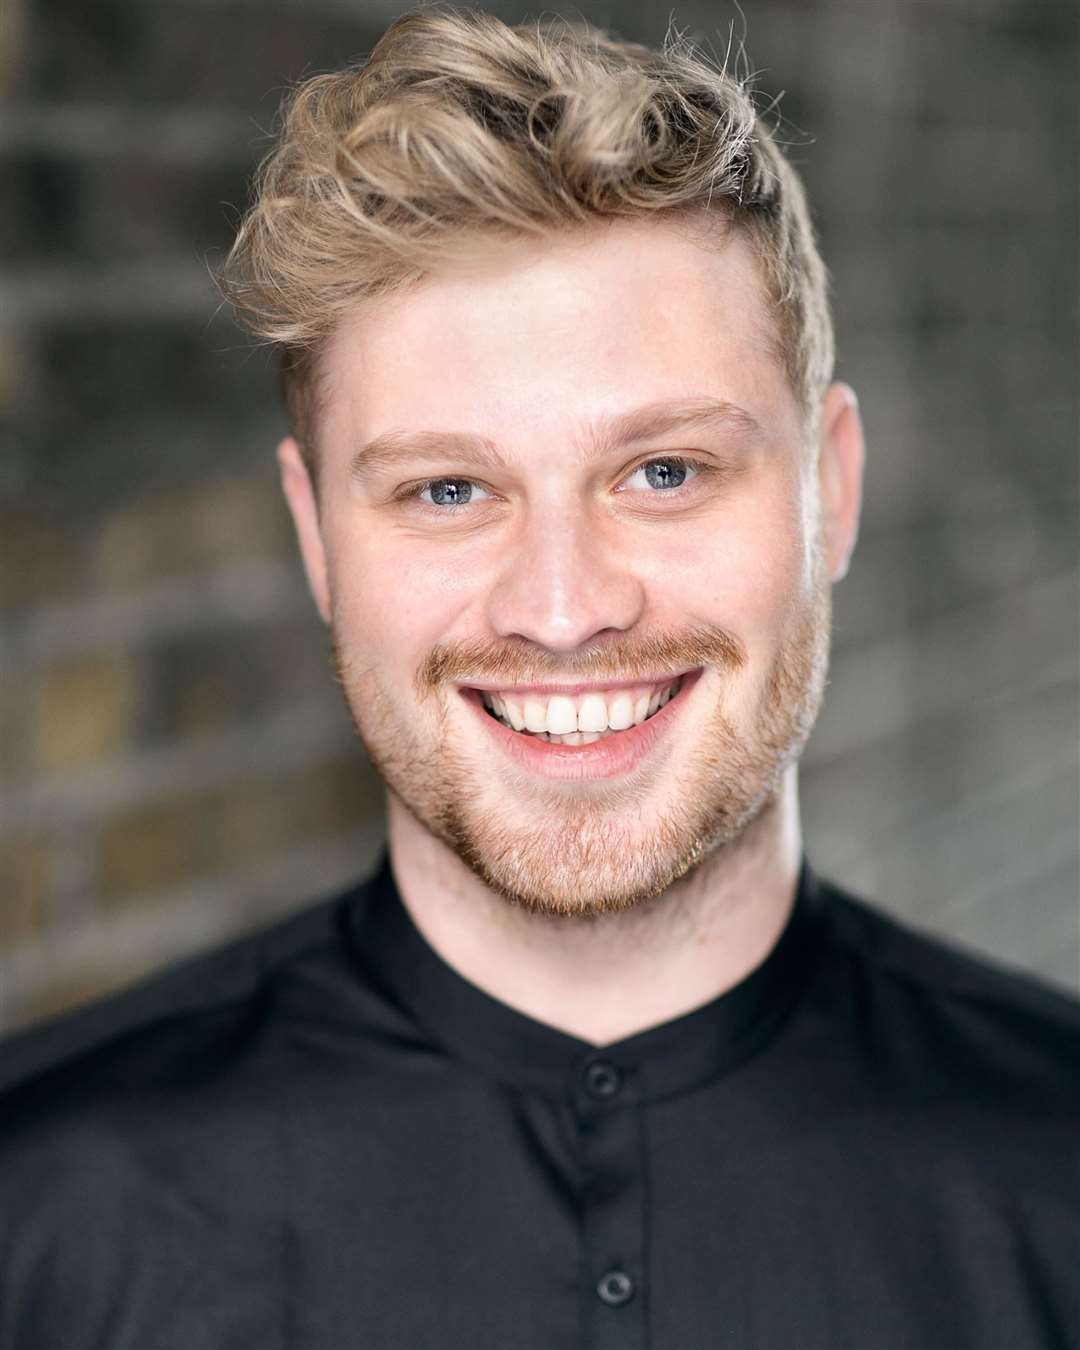 Oscar Conlon-Morrey, 26, from Newark, has been nominated for the What's On Stage Awards. (23455810)